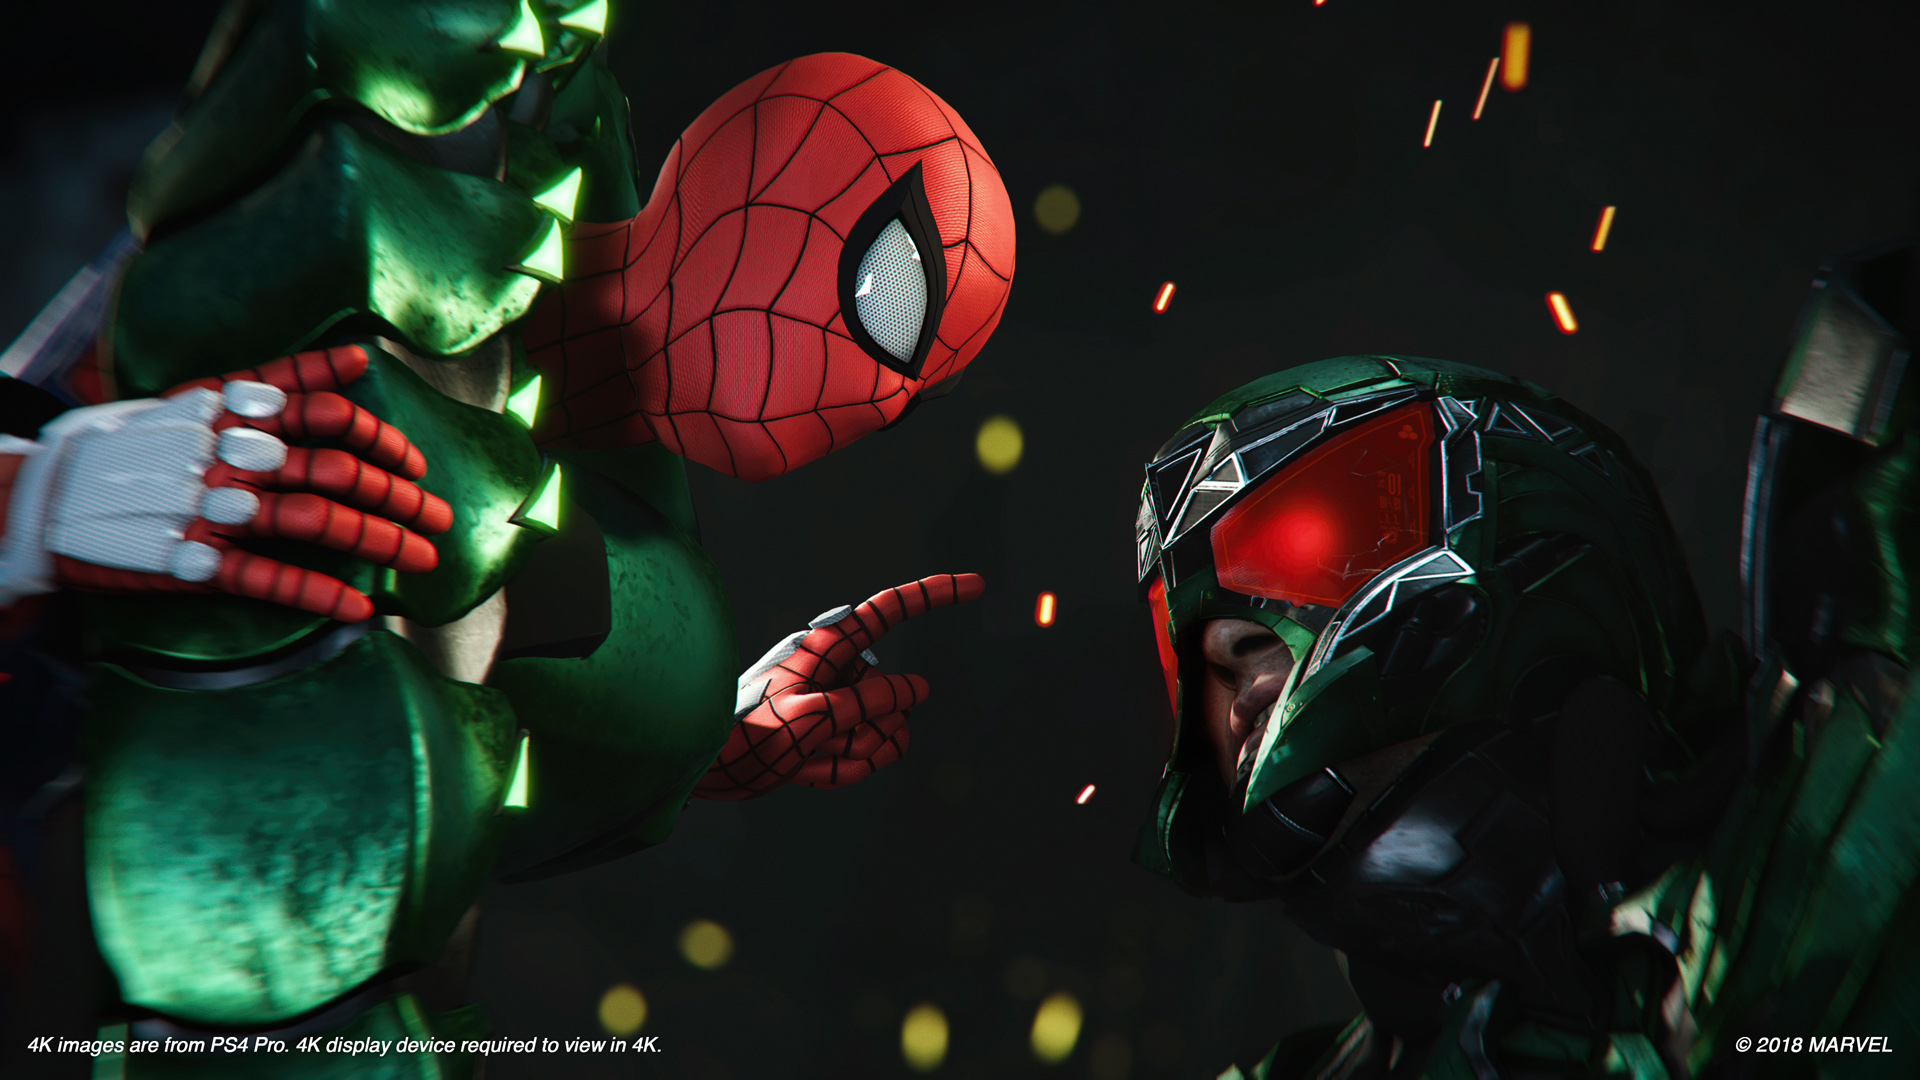 Скриншот *Marvel's Spider-Man GOTY [PS4 Exclusive] 5.05 / 6.72 / 7.02 [EUR] (2018) [Русский] (v1.17)*